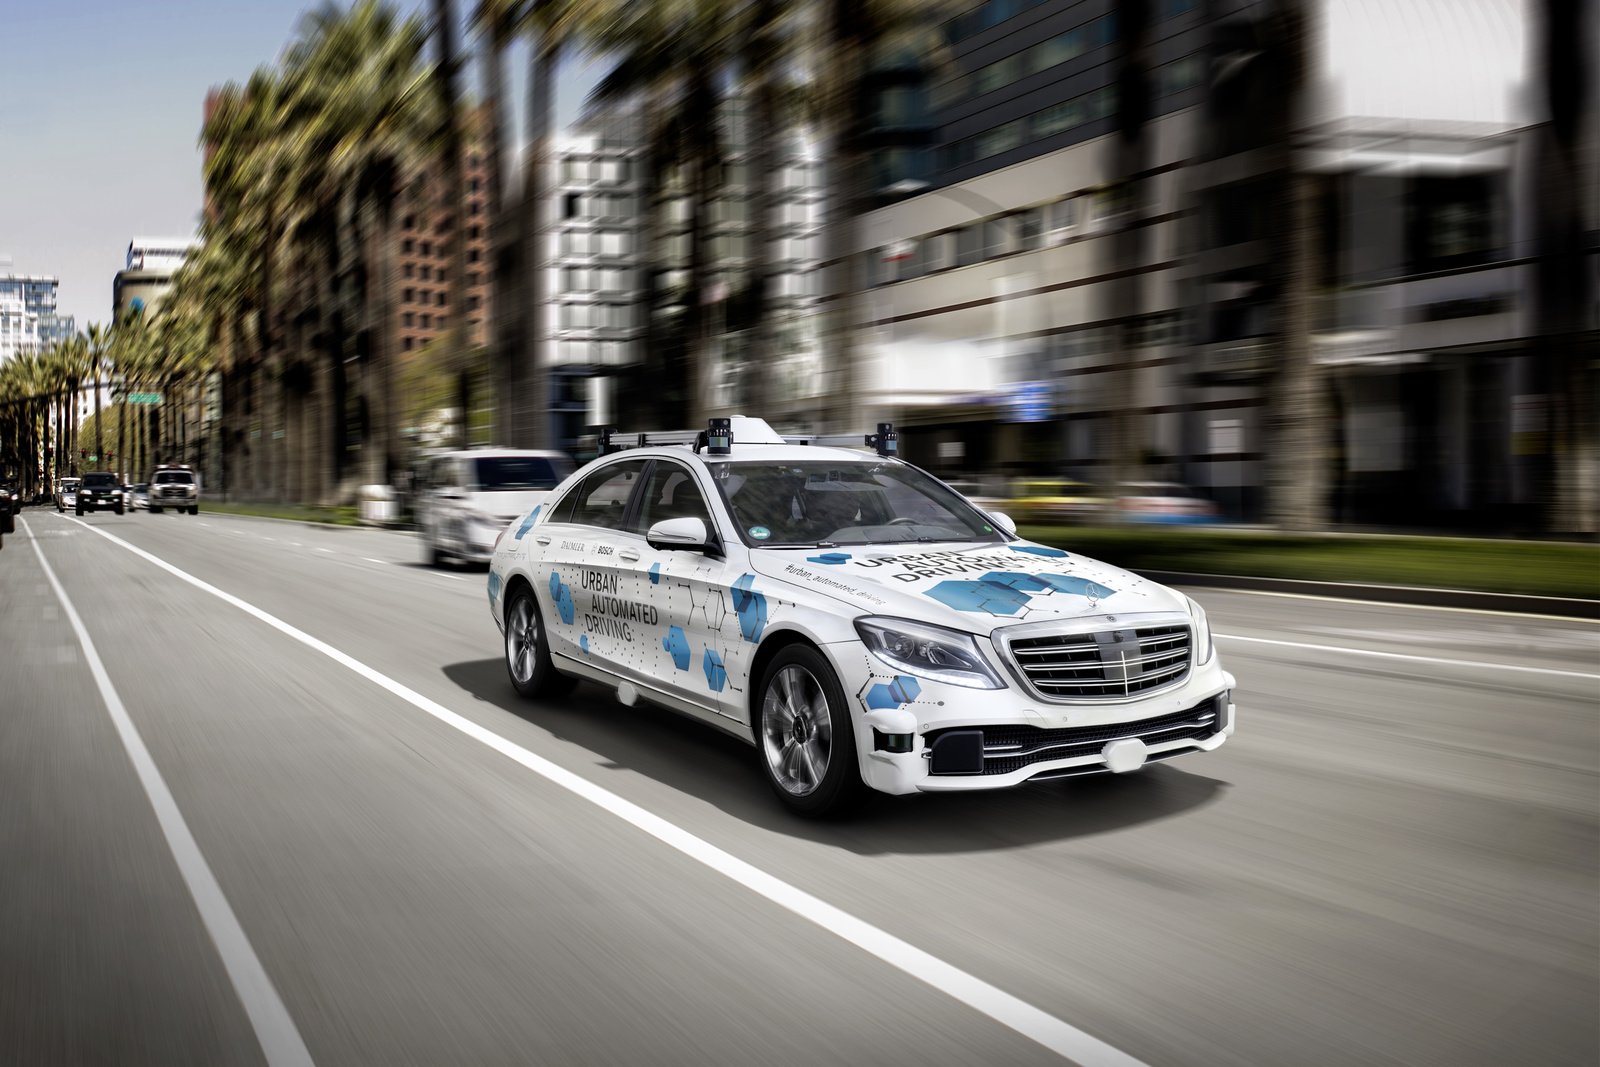 Sustainable mobility: Bosch and Daimler offer automated driving service